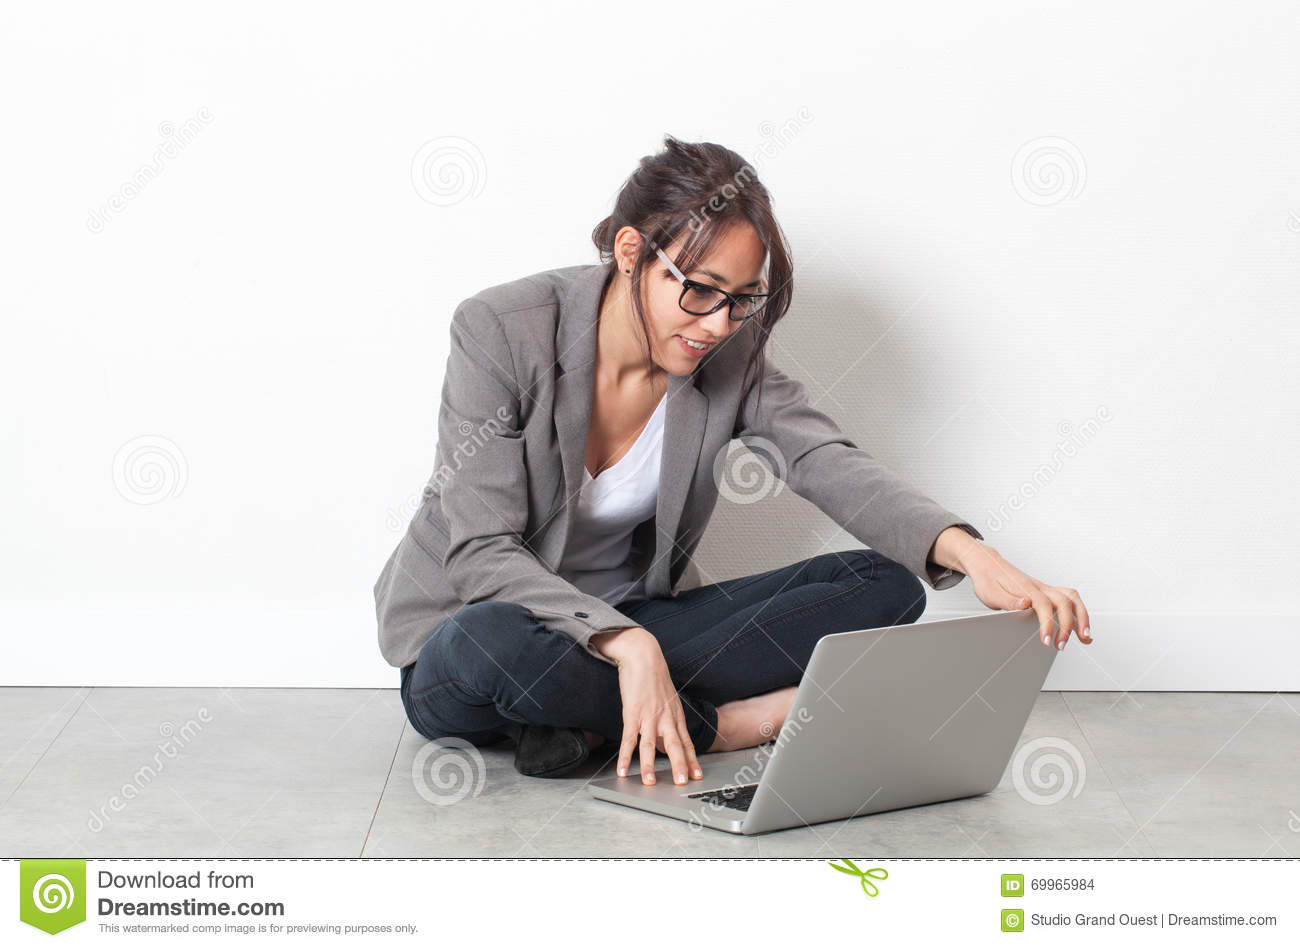 Smiling Young Woman Working On Computer Relaxing On The